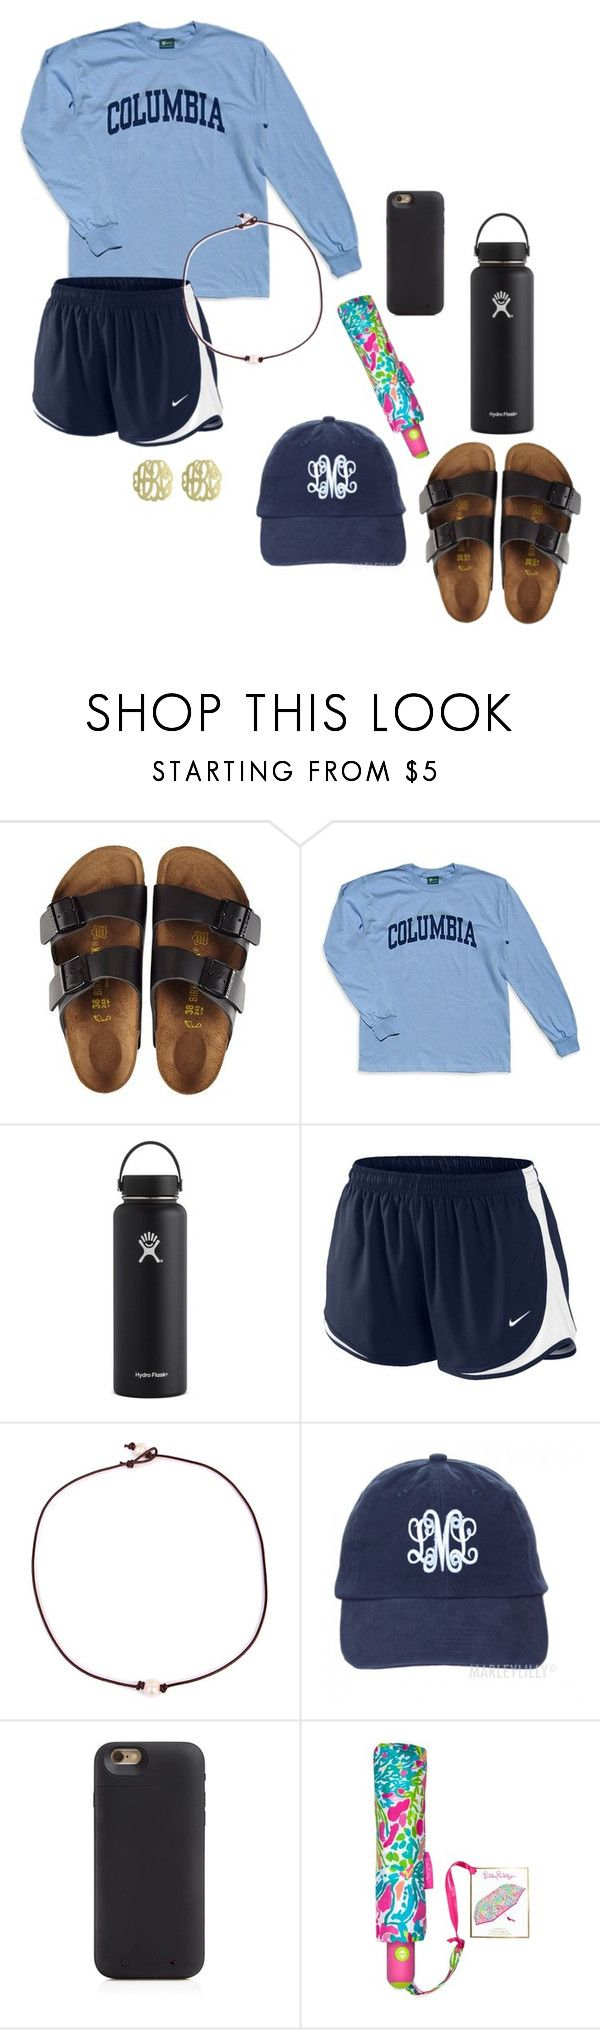 """field trip monday!"" by preppygurl02 ❤ liked on Polyvore featuring Birkenstock, Columbia, Hydro Flask, NIKE, Riah Fashion, Mophie, Lilly Pulitzer and Initial Reaction"